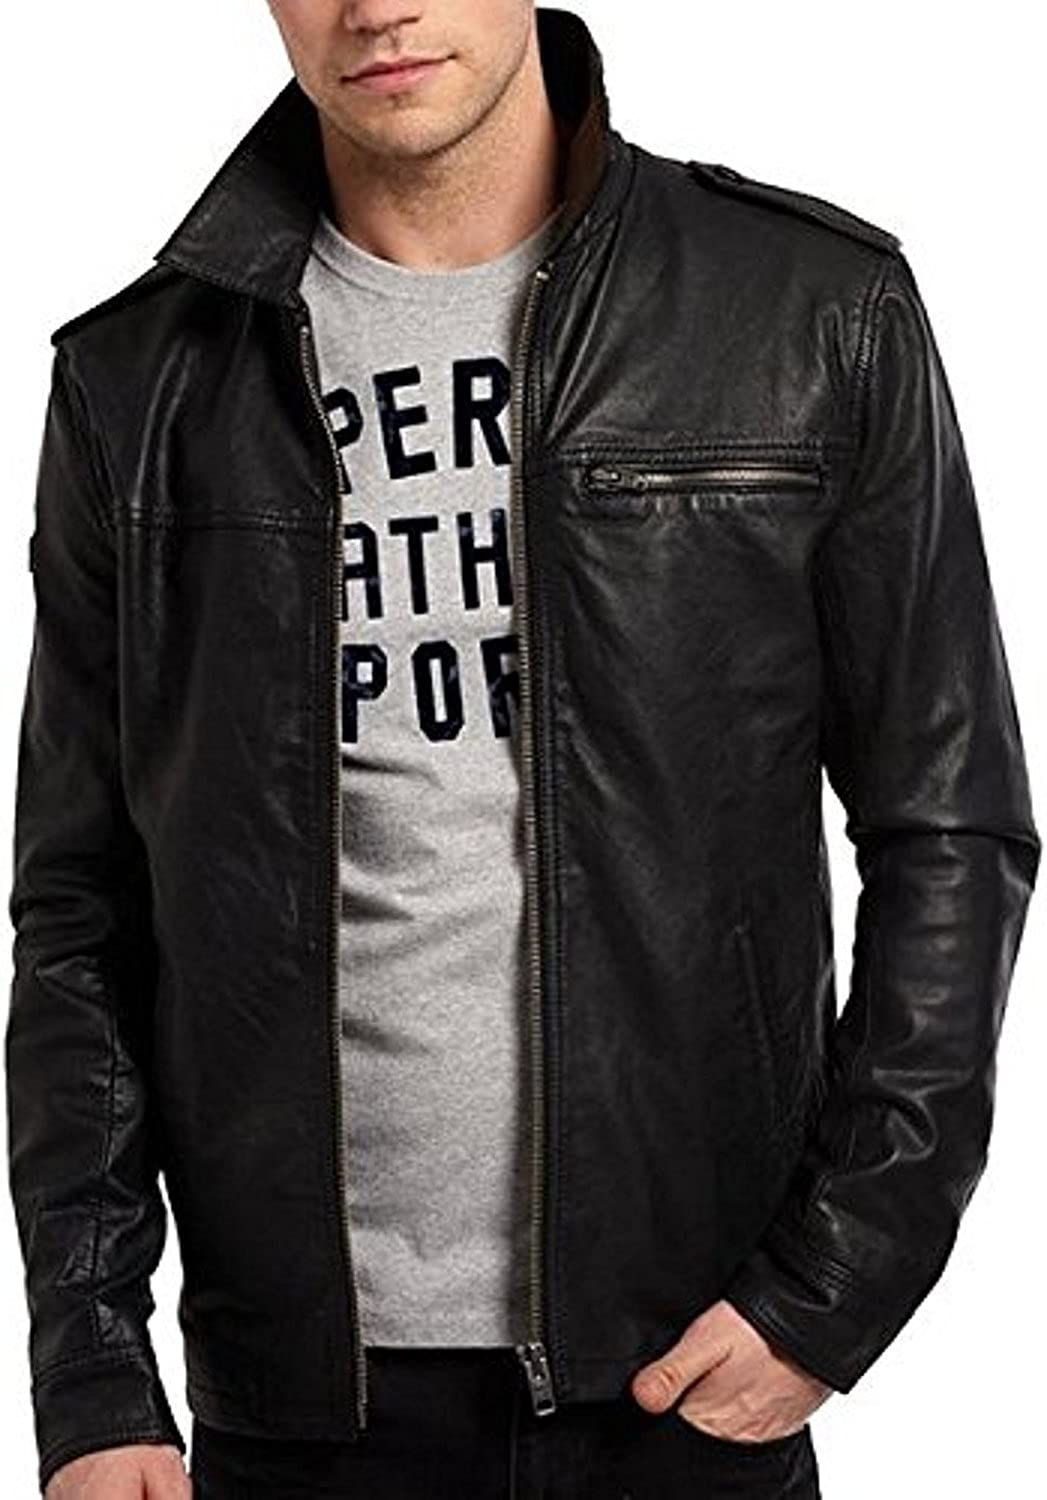 New Mens Leather Jacket Black Slim Fit Biker Motorcycle Genuine Leather Coat LTC757